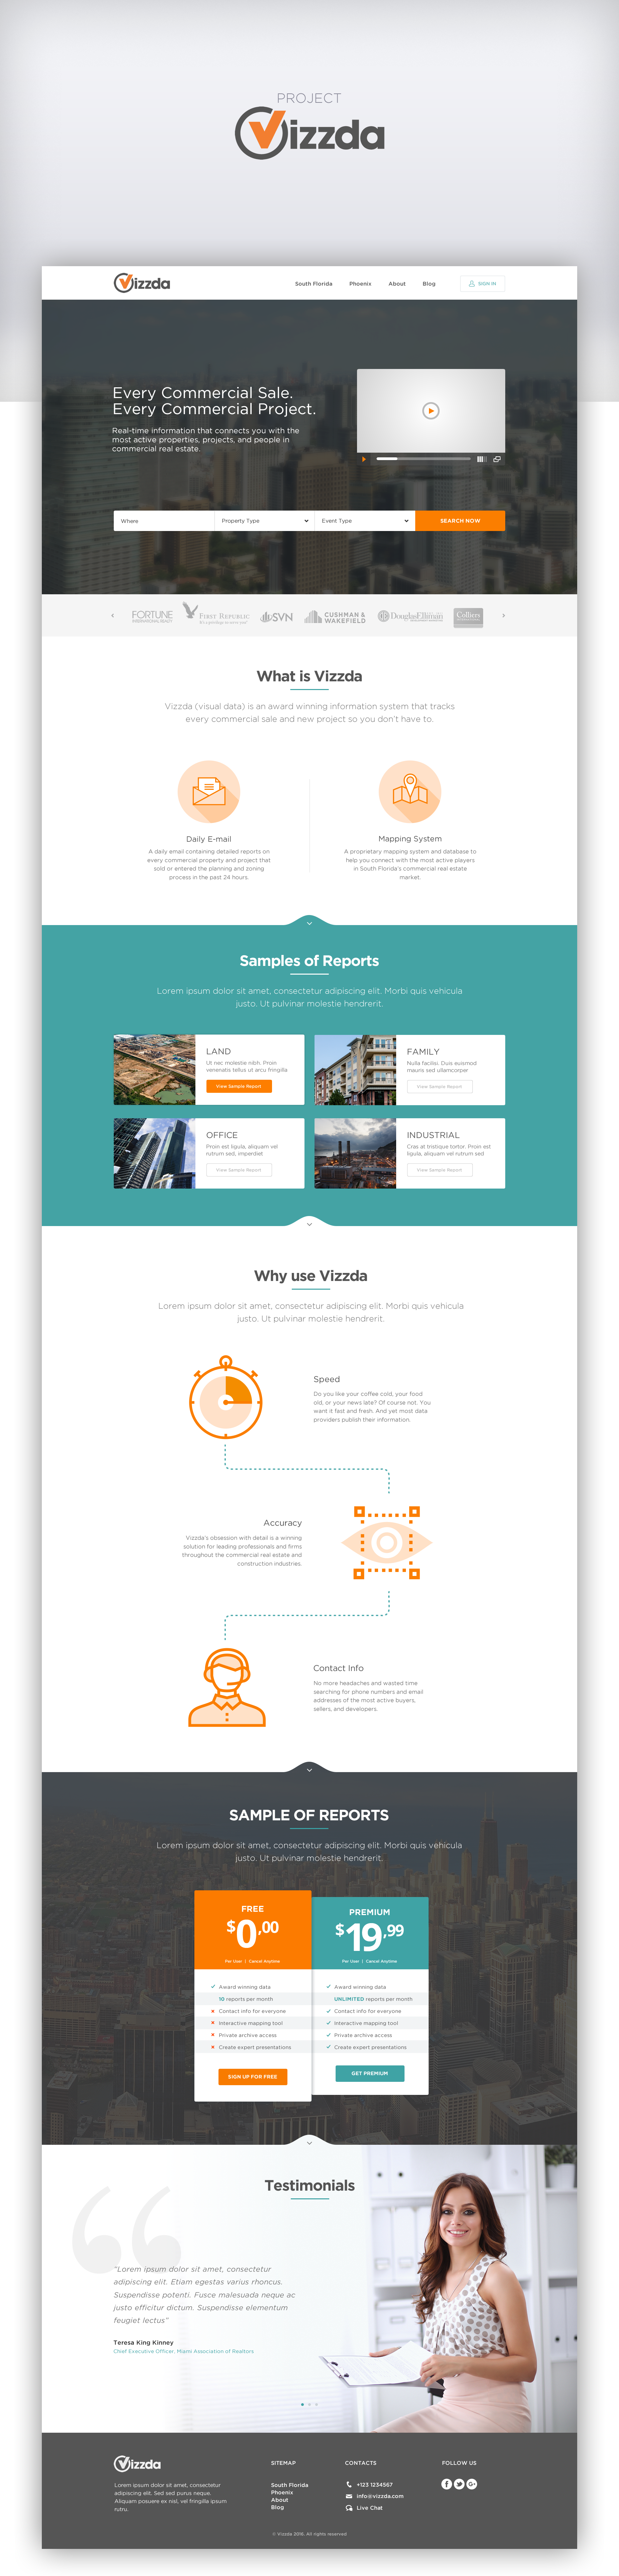 Designs | Homepage Revision for National Data Provider | Web page ...